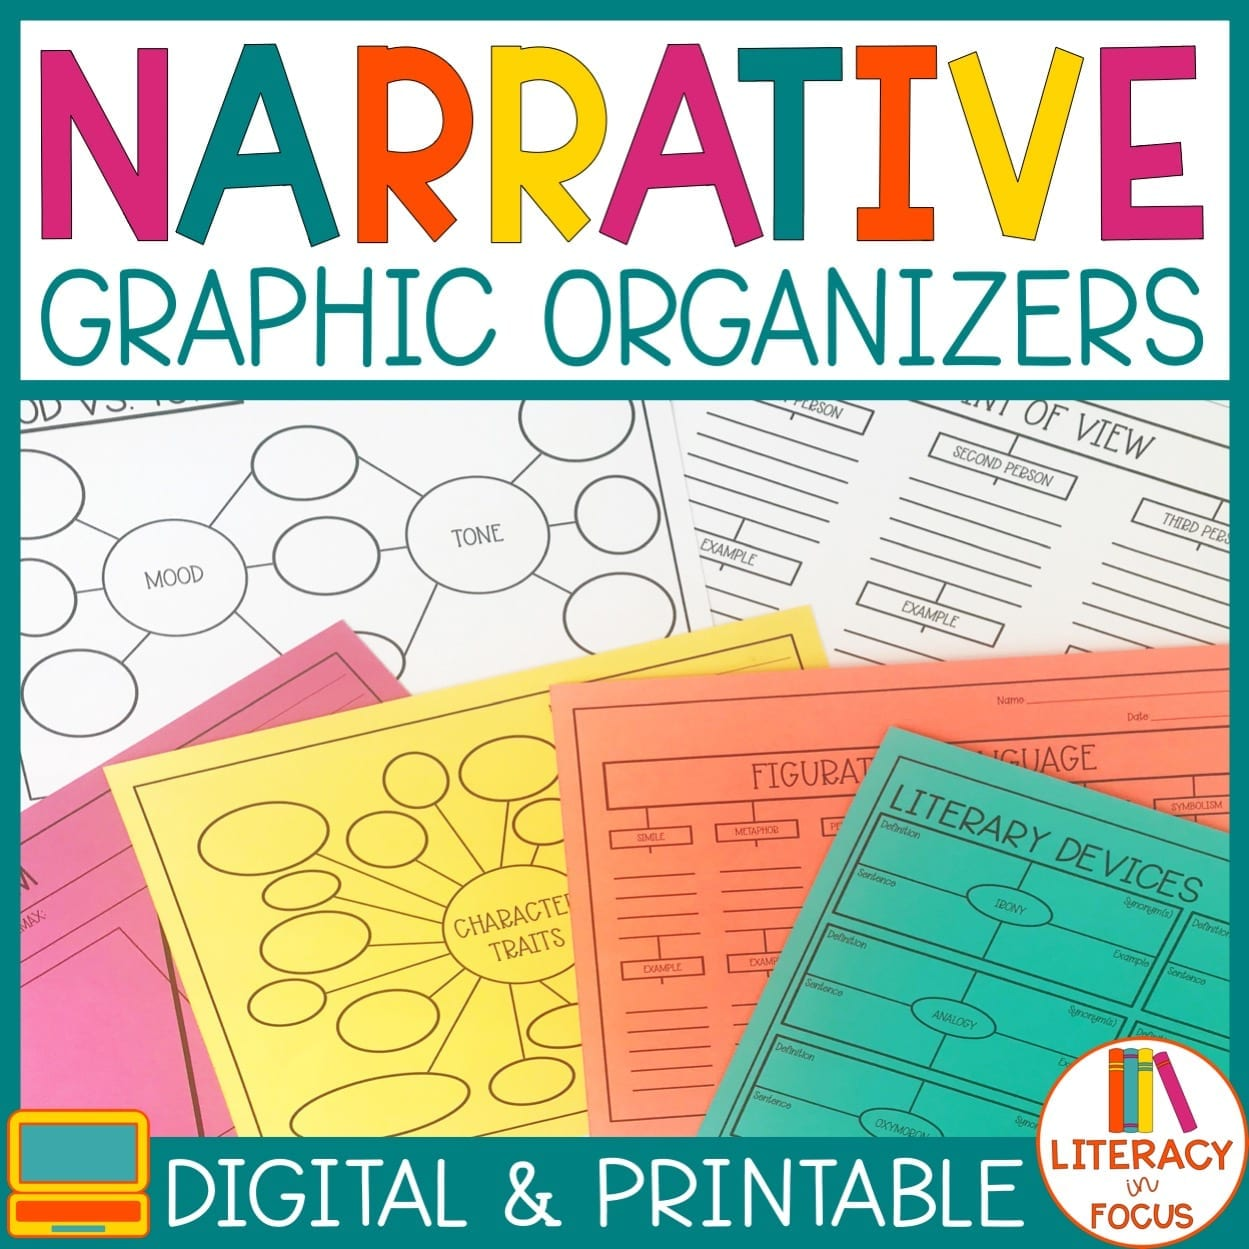 Narrative Thinking Maps